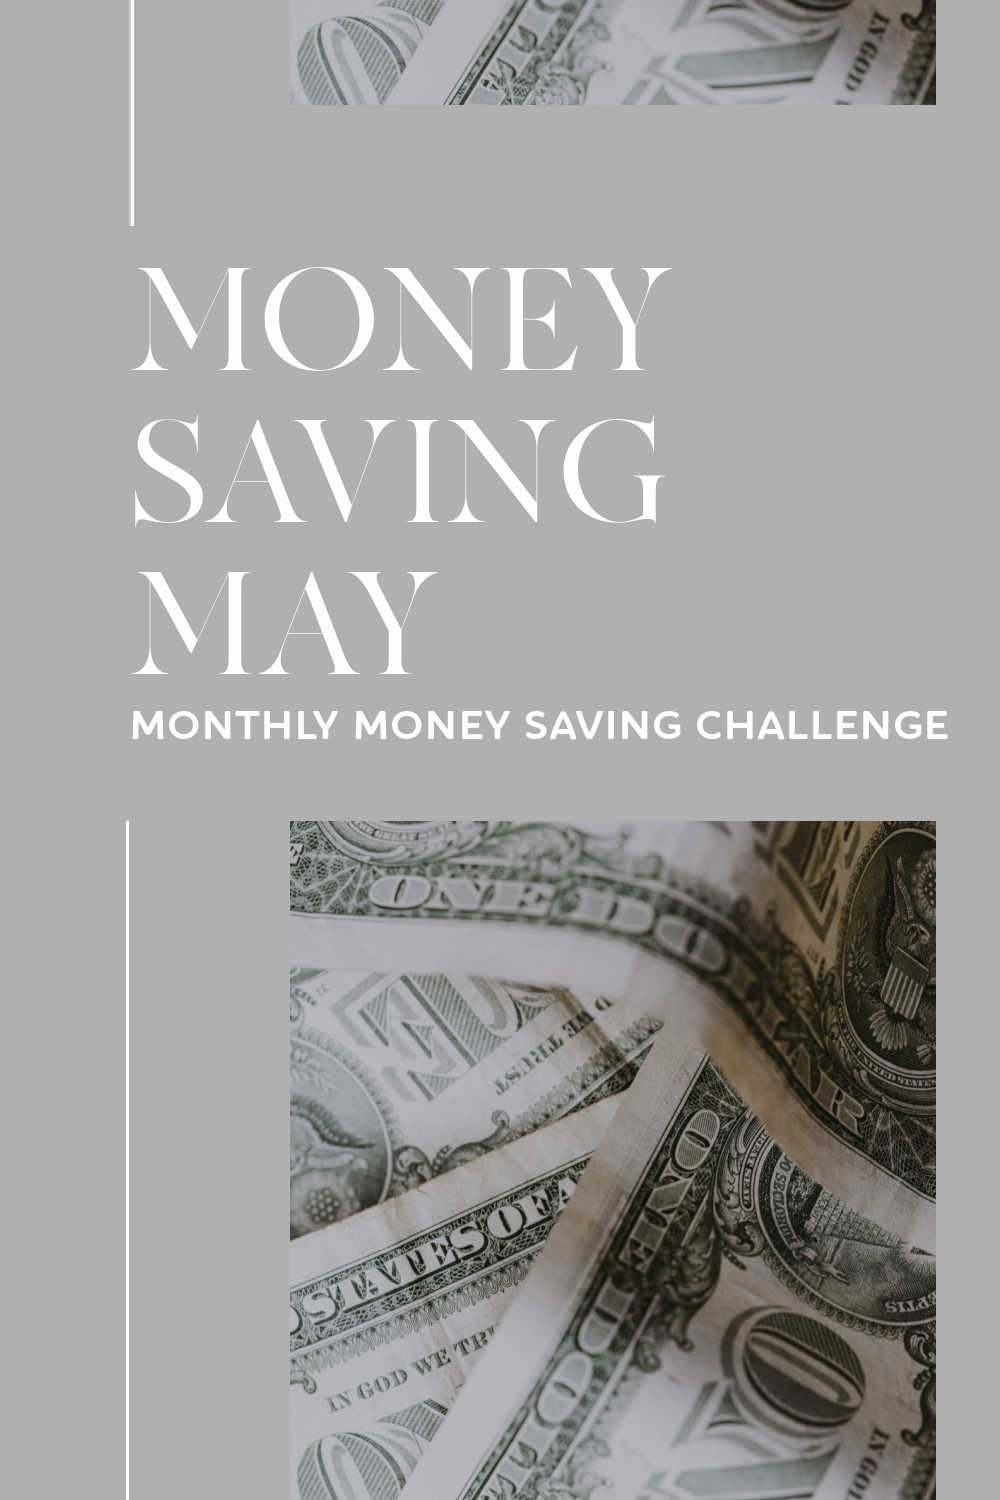 money saving may monthly challenge